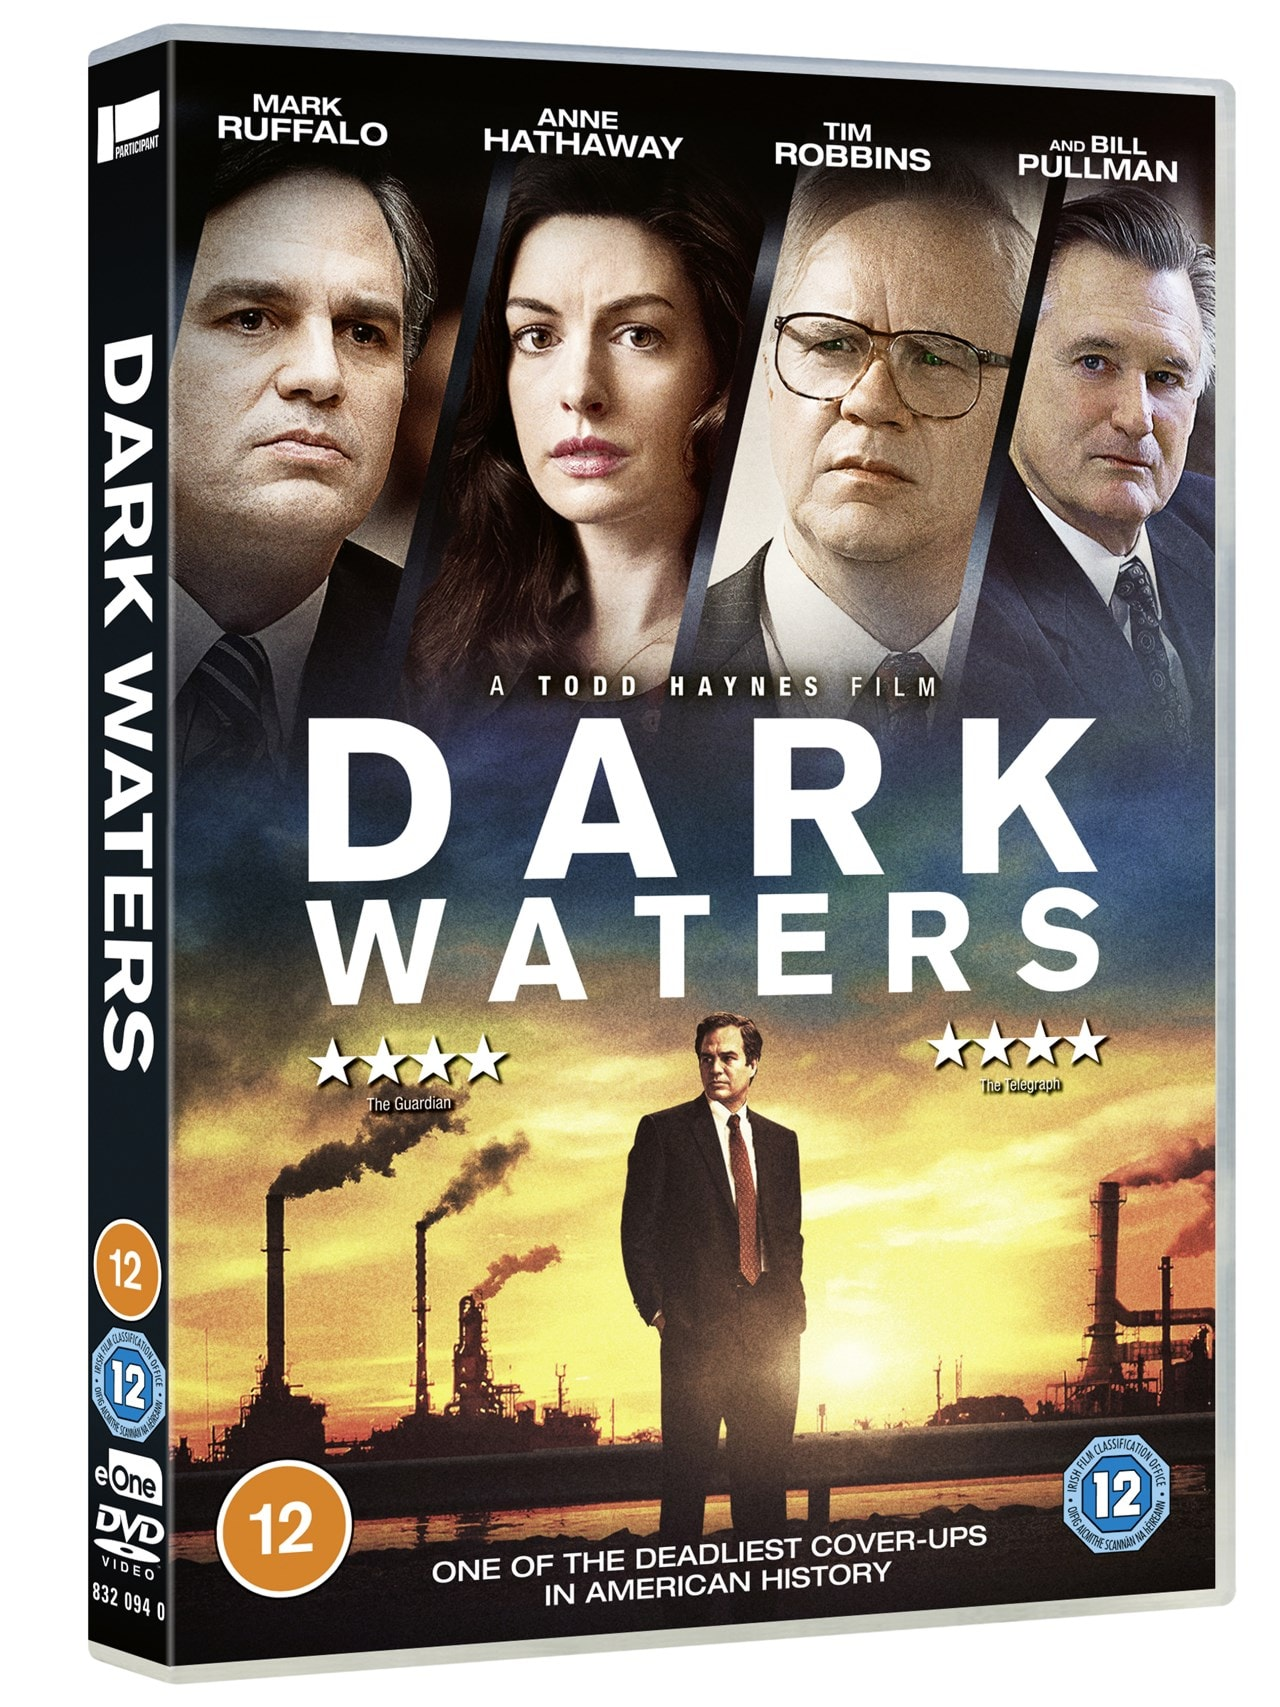 Dark Waters - 4